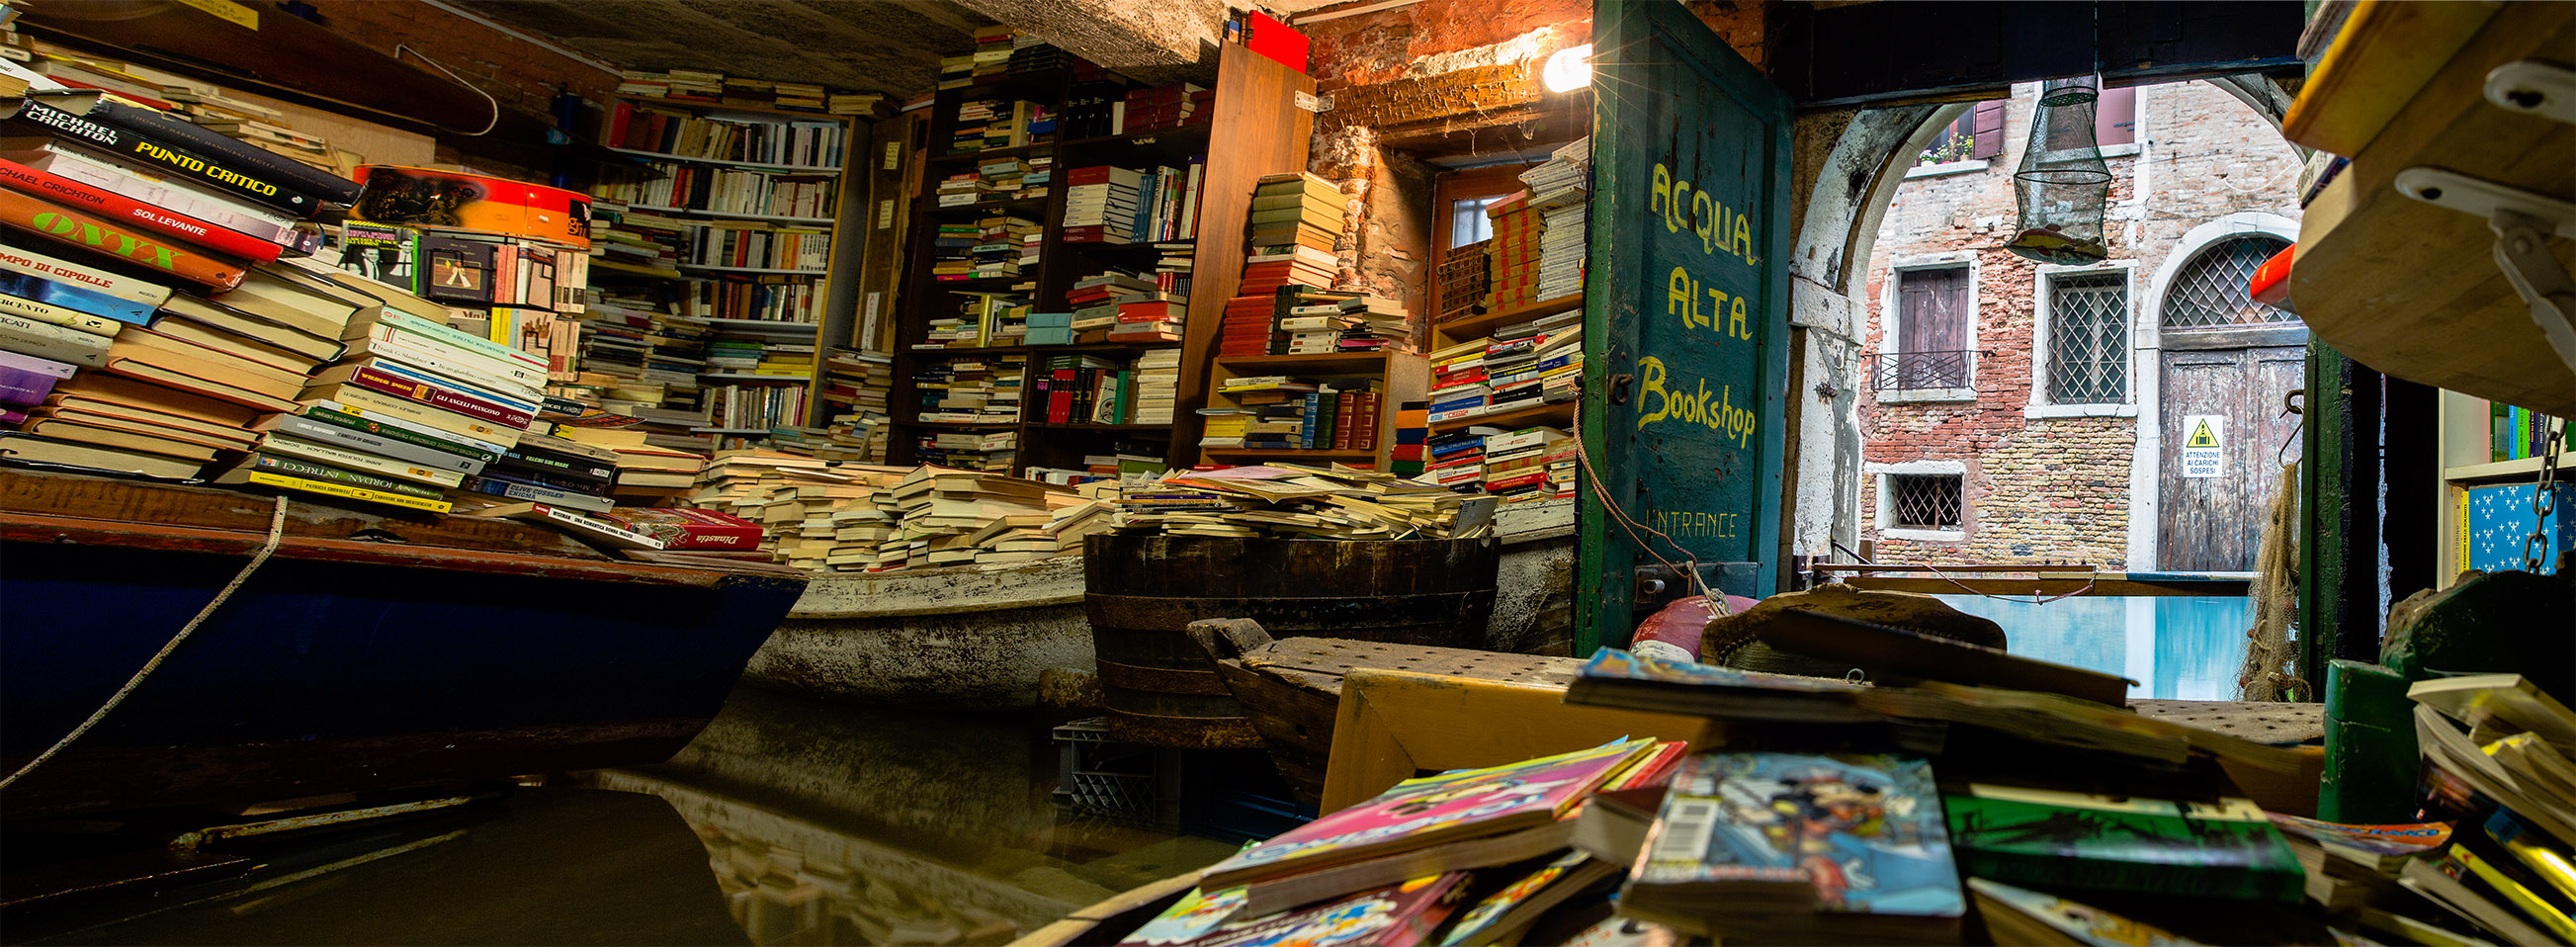 Altair Libreria The Flooded Bookshop Lost In The Midlands